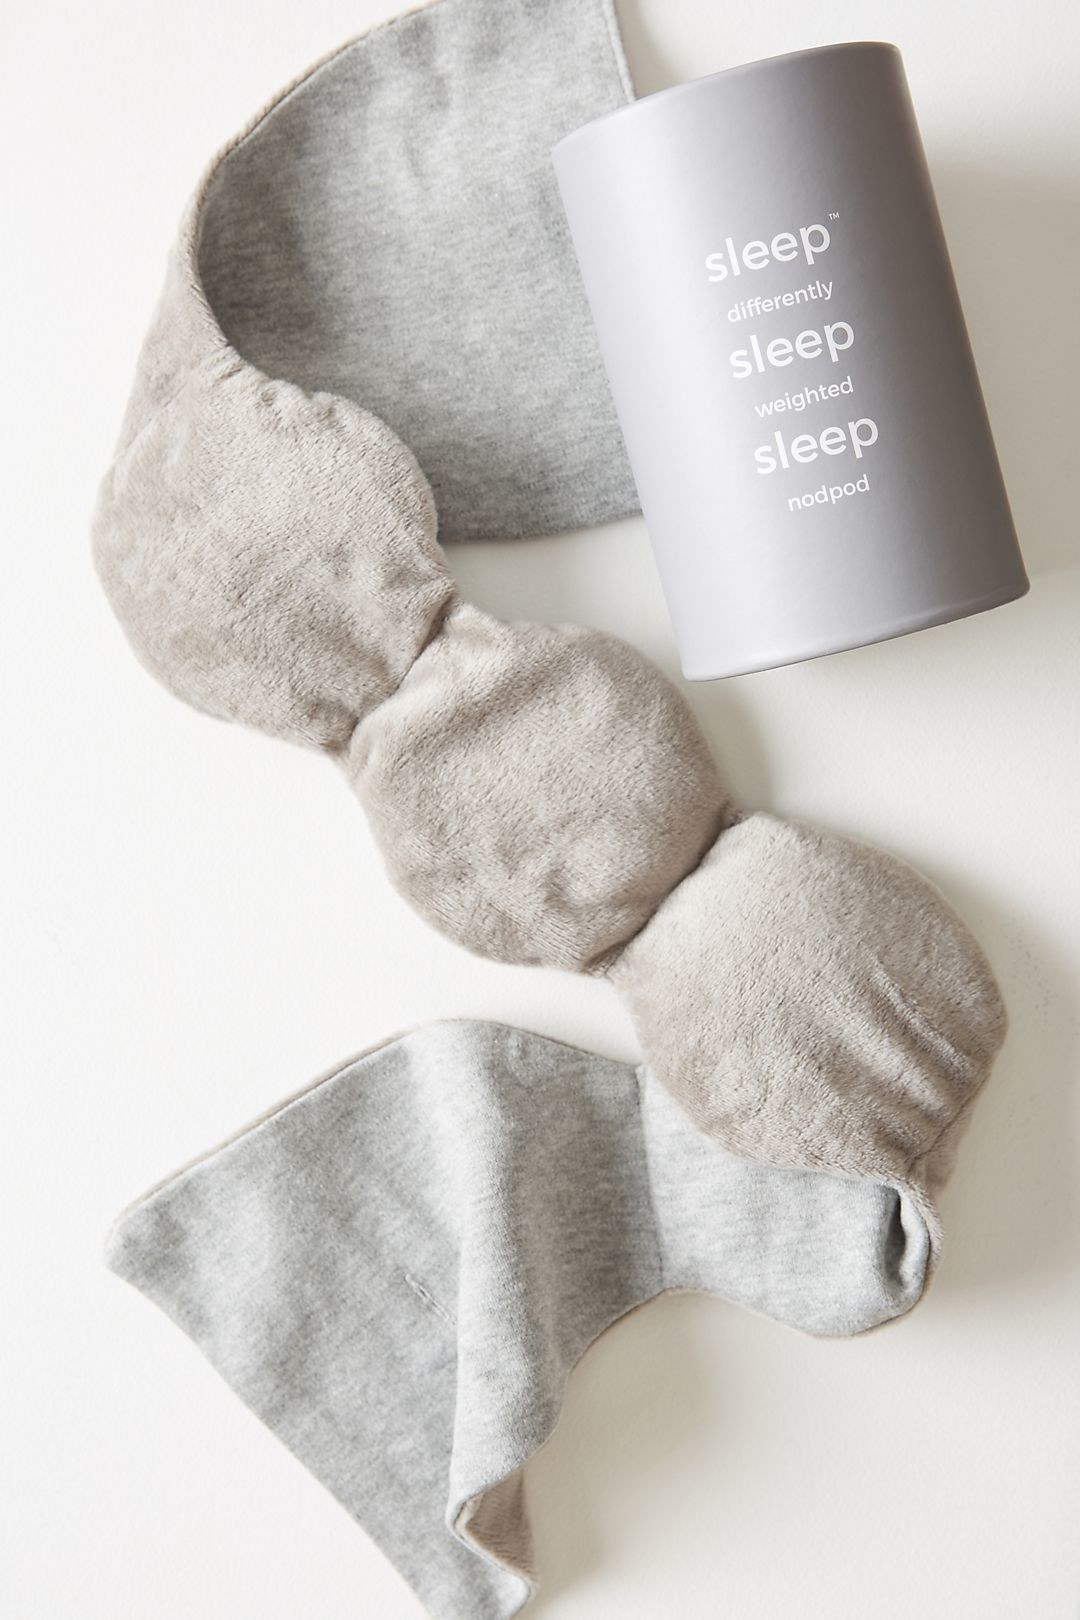 The grey fleecey nodpod eye mask with no strap